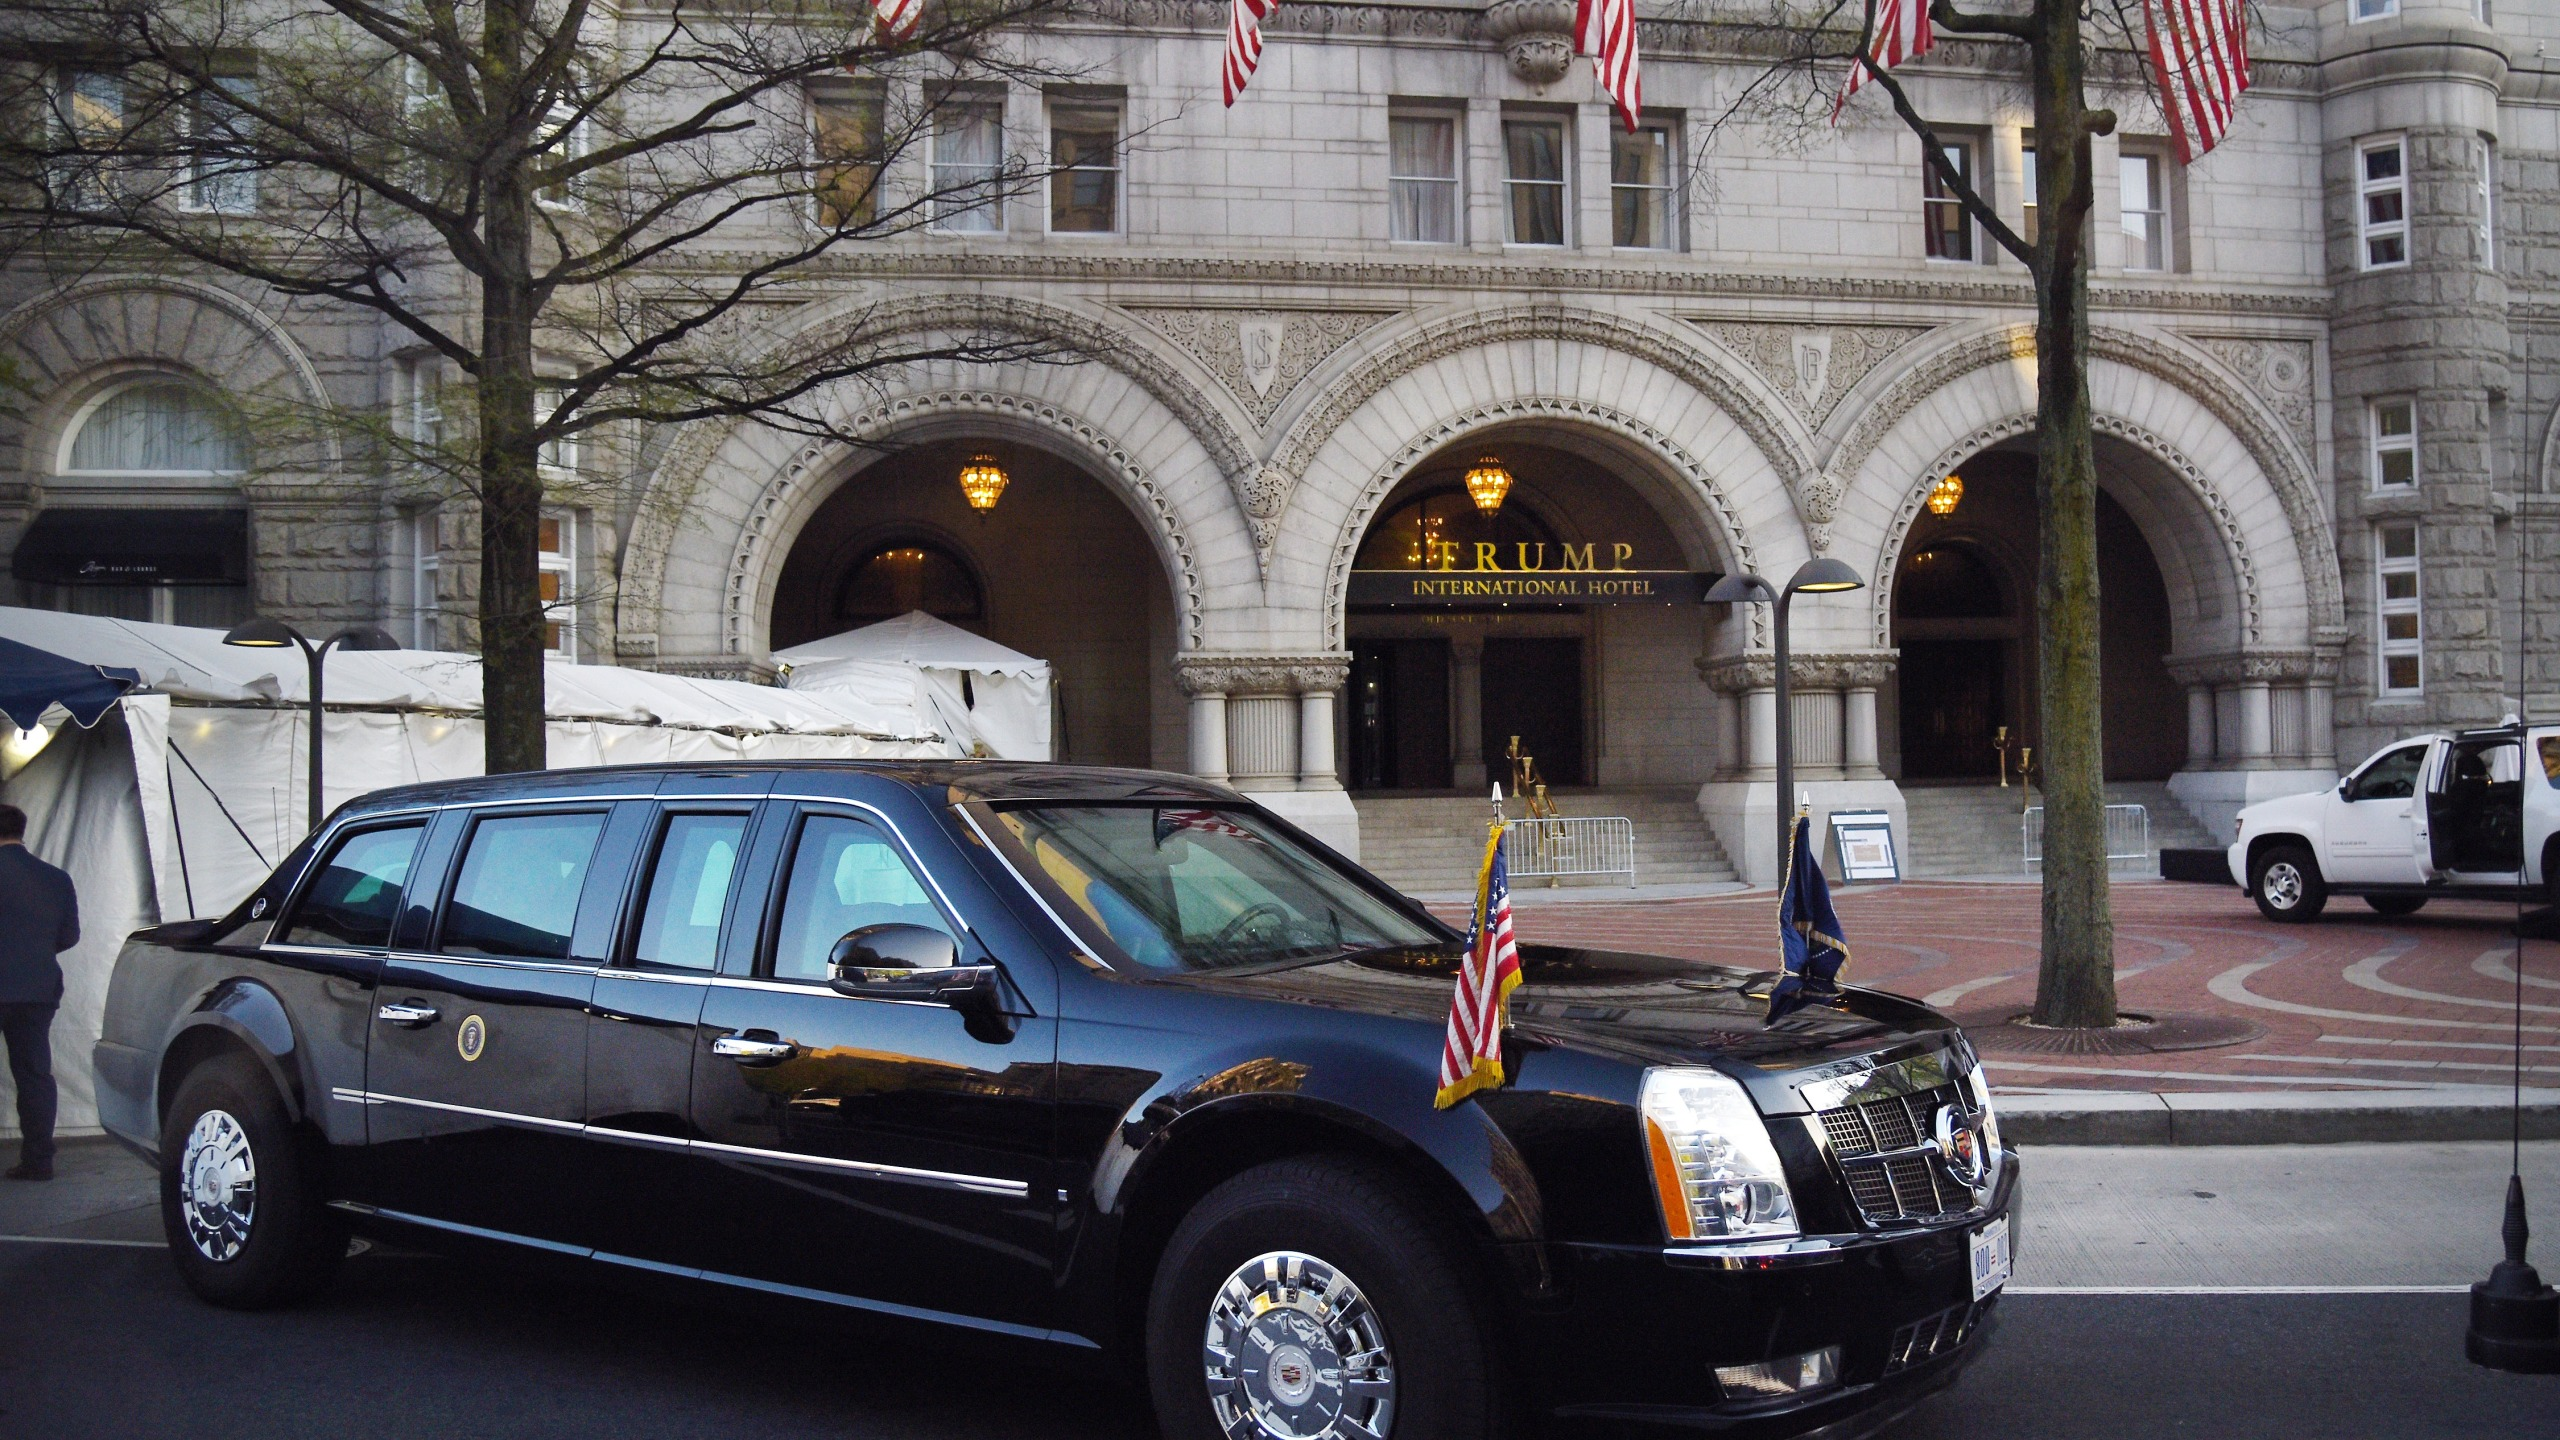 The presidential limousine is parked in front of the Trump hotel in Washington, D.C. on April 30, 2018. (Credit: Olivier Douliery-Pool/Getty Images)